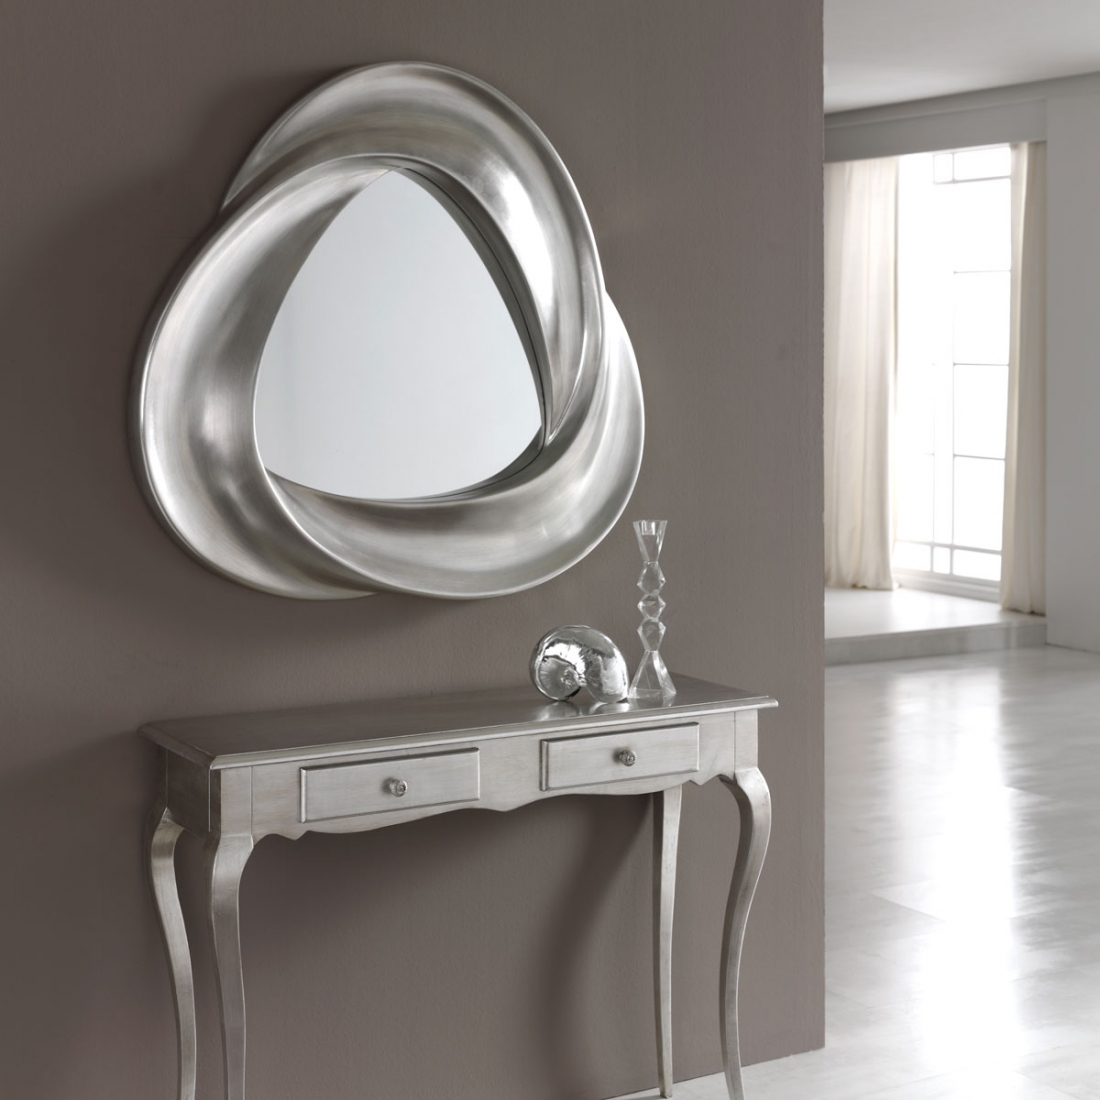 miroir argent mobius. Black Bedroom Furniture Sets. Home Design Ideas